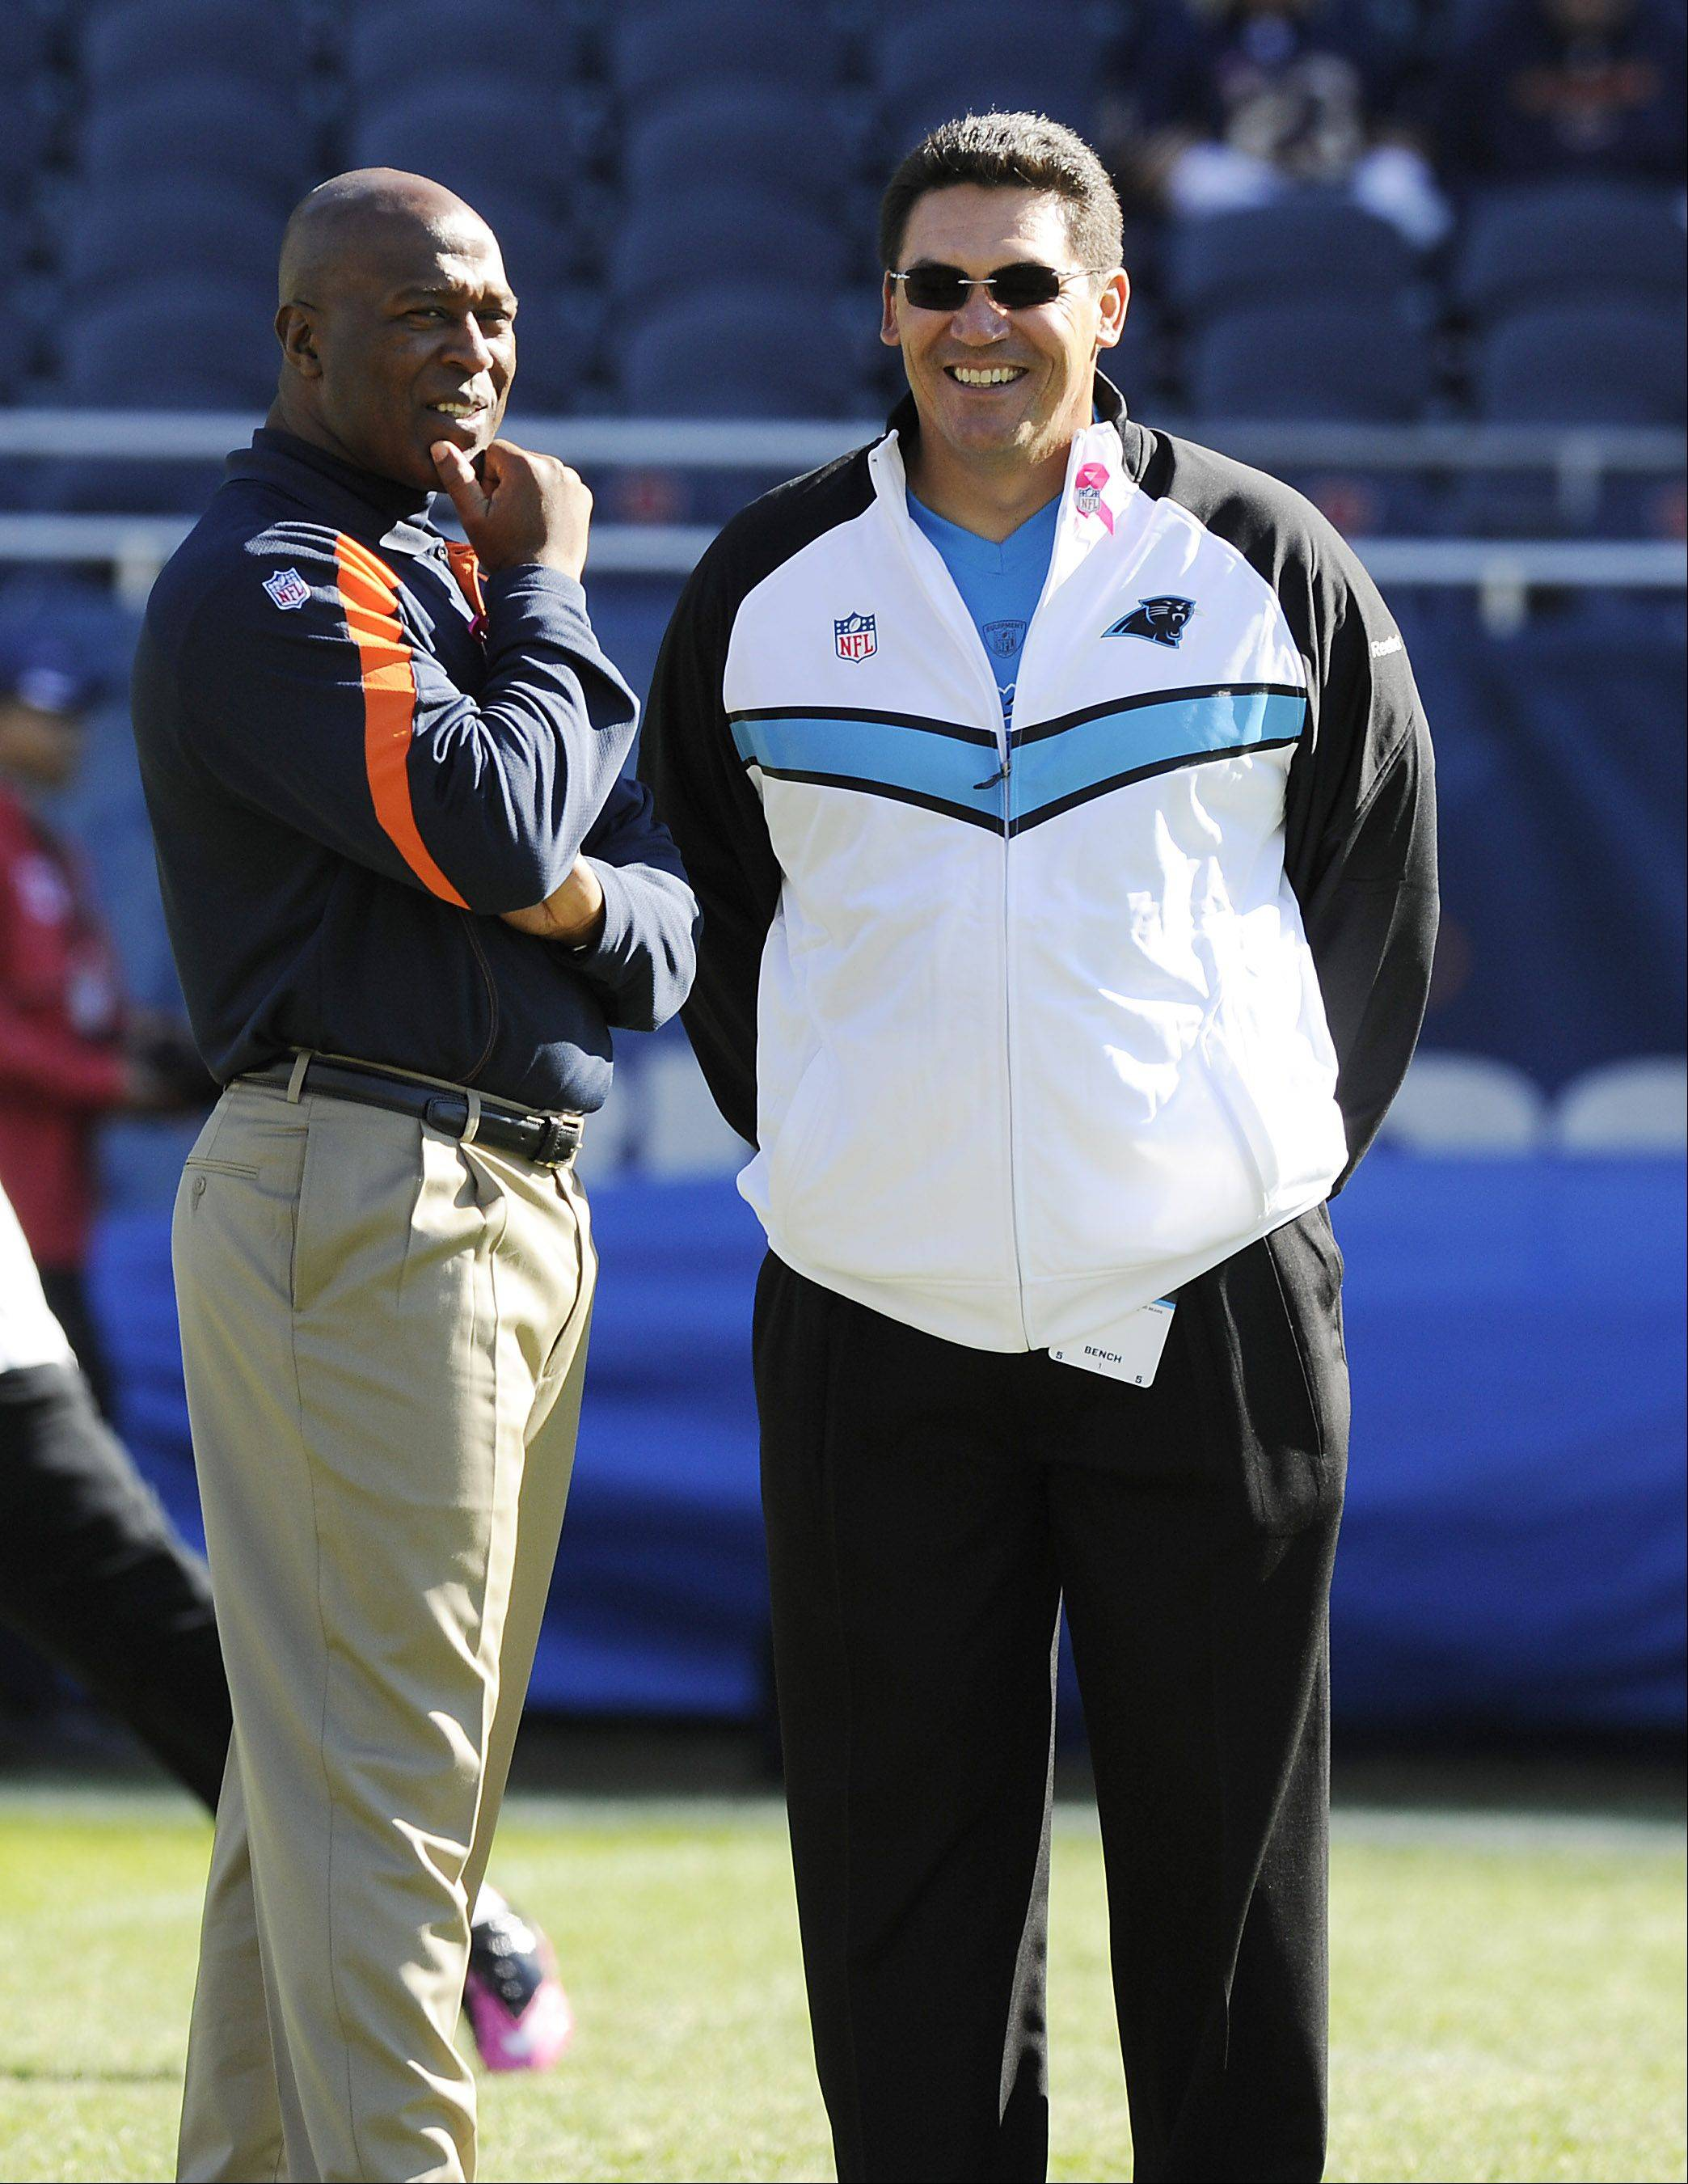 Mark Welsh/mwelsh@dailyherald.comChicago Bears coach Lovie Smith greets Panthers head coach Ron Rivera before the game as they get ready to play at Soldier Field in Chicago.